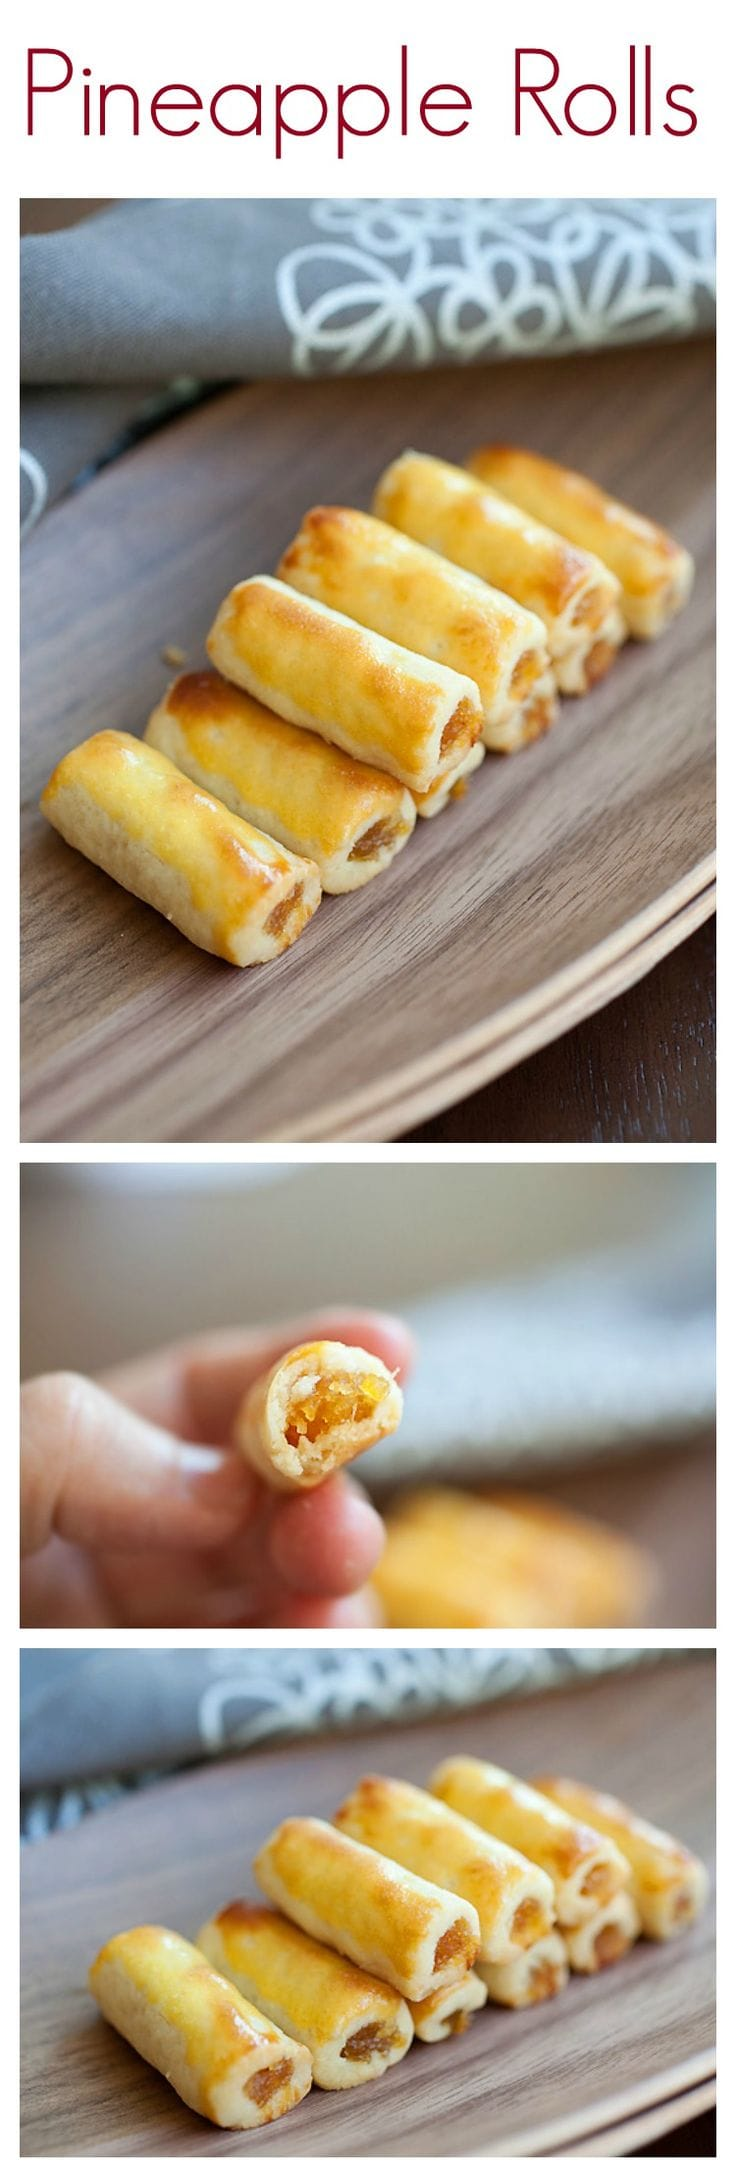 Pineapple Rolls - amazing pastry filled with pineapple jam, a must-have for Lunar New Year in Southeast Asia | rasamalaysia.com